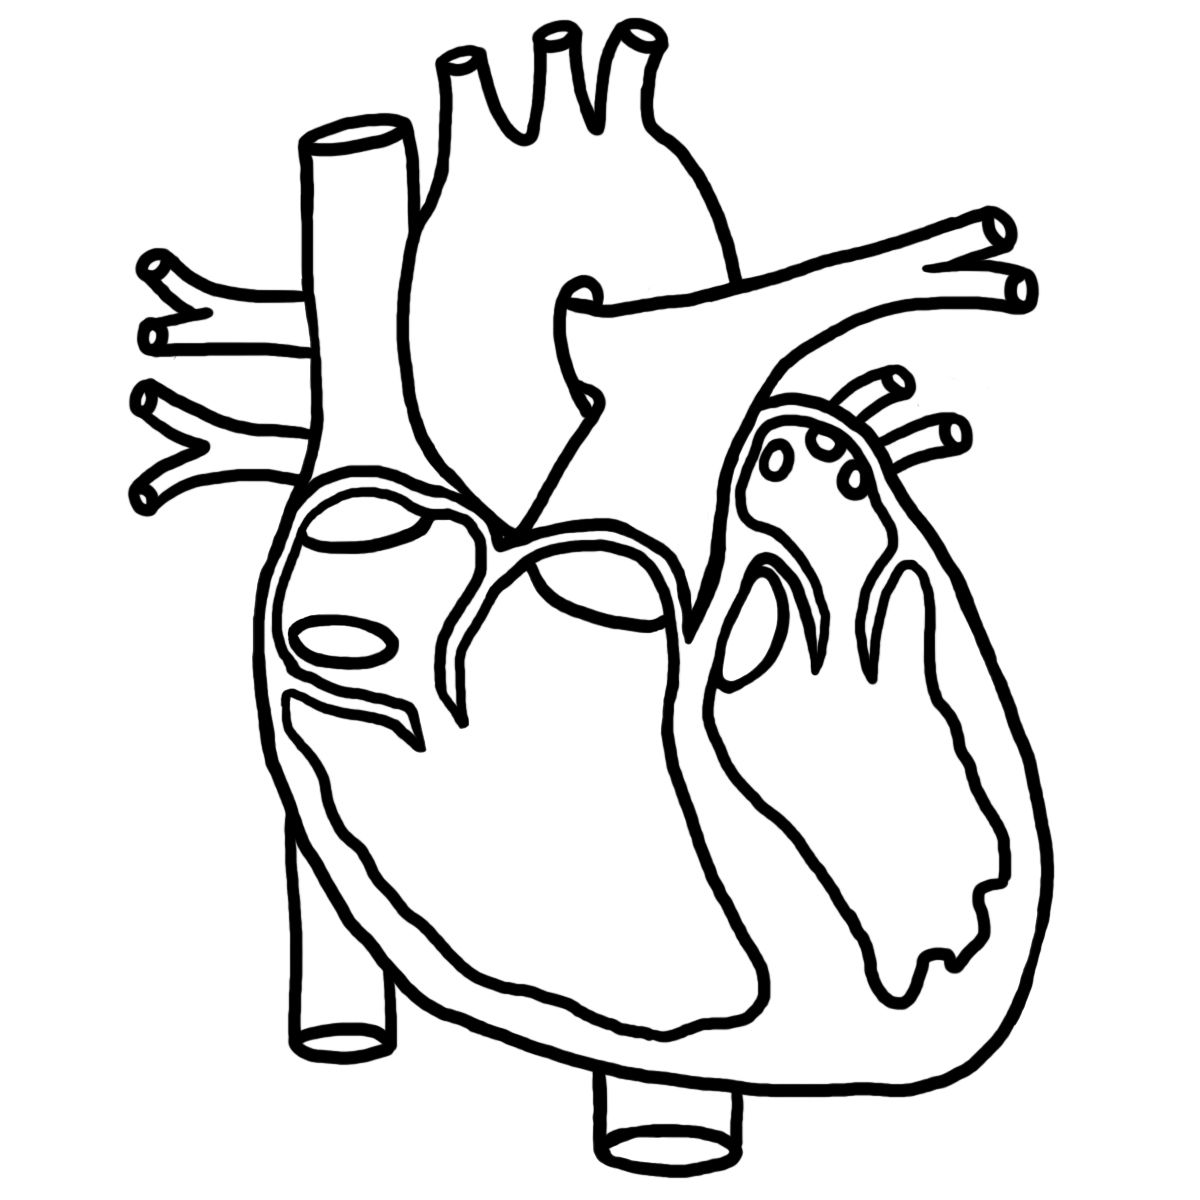 Human Anatomy Colouring Pages Human Heart Diagram Heart